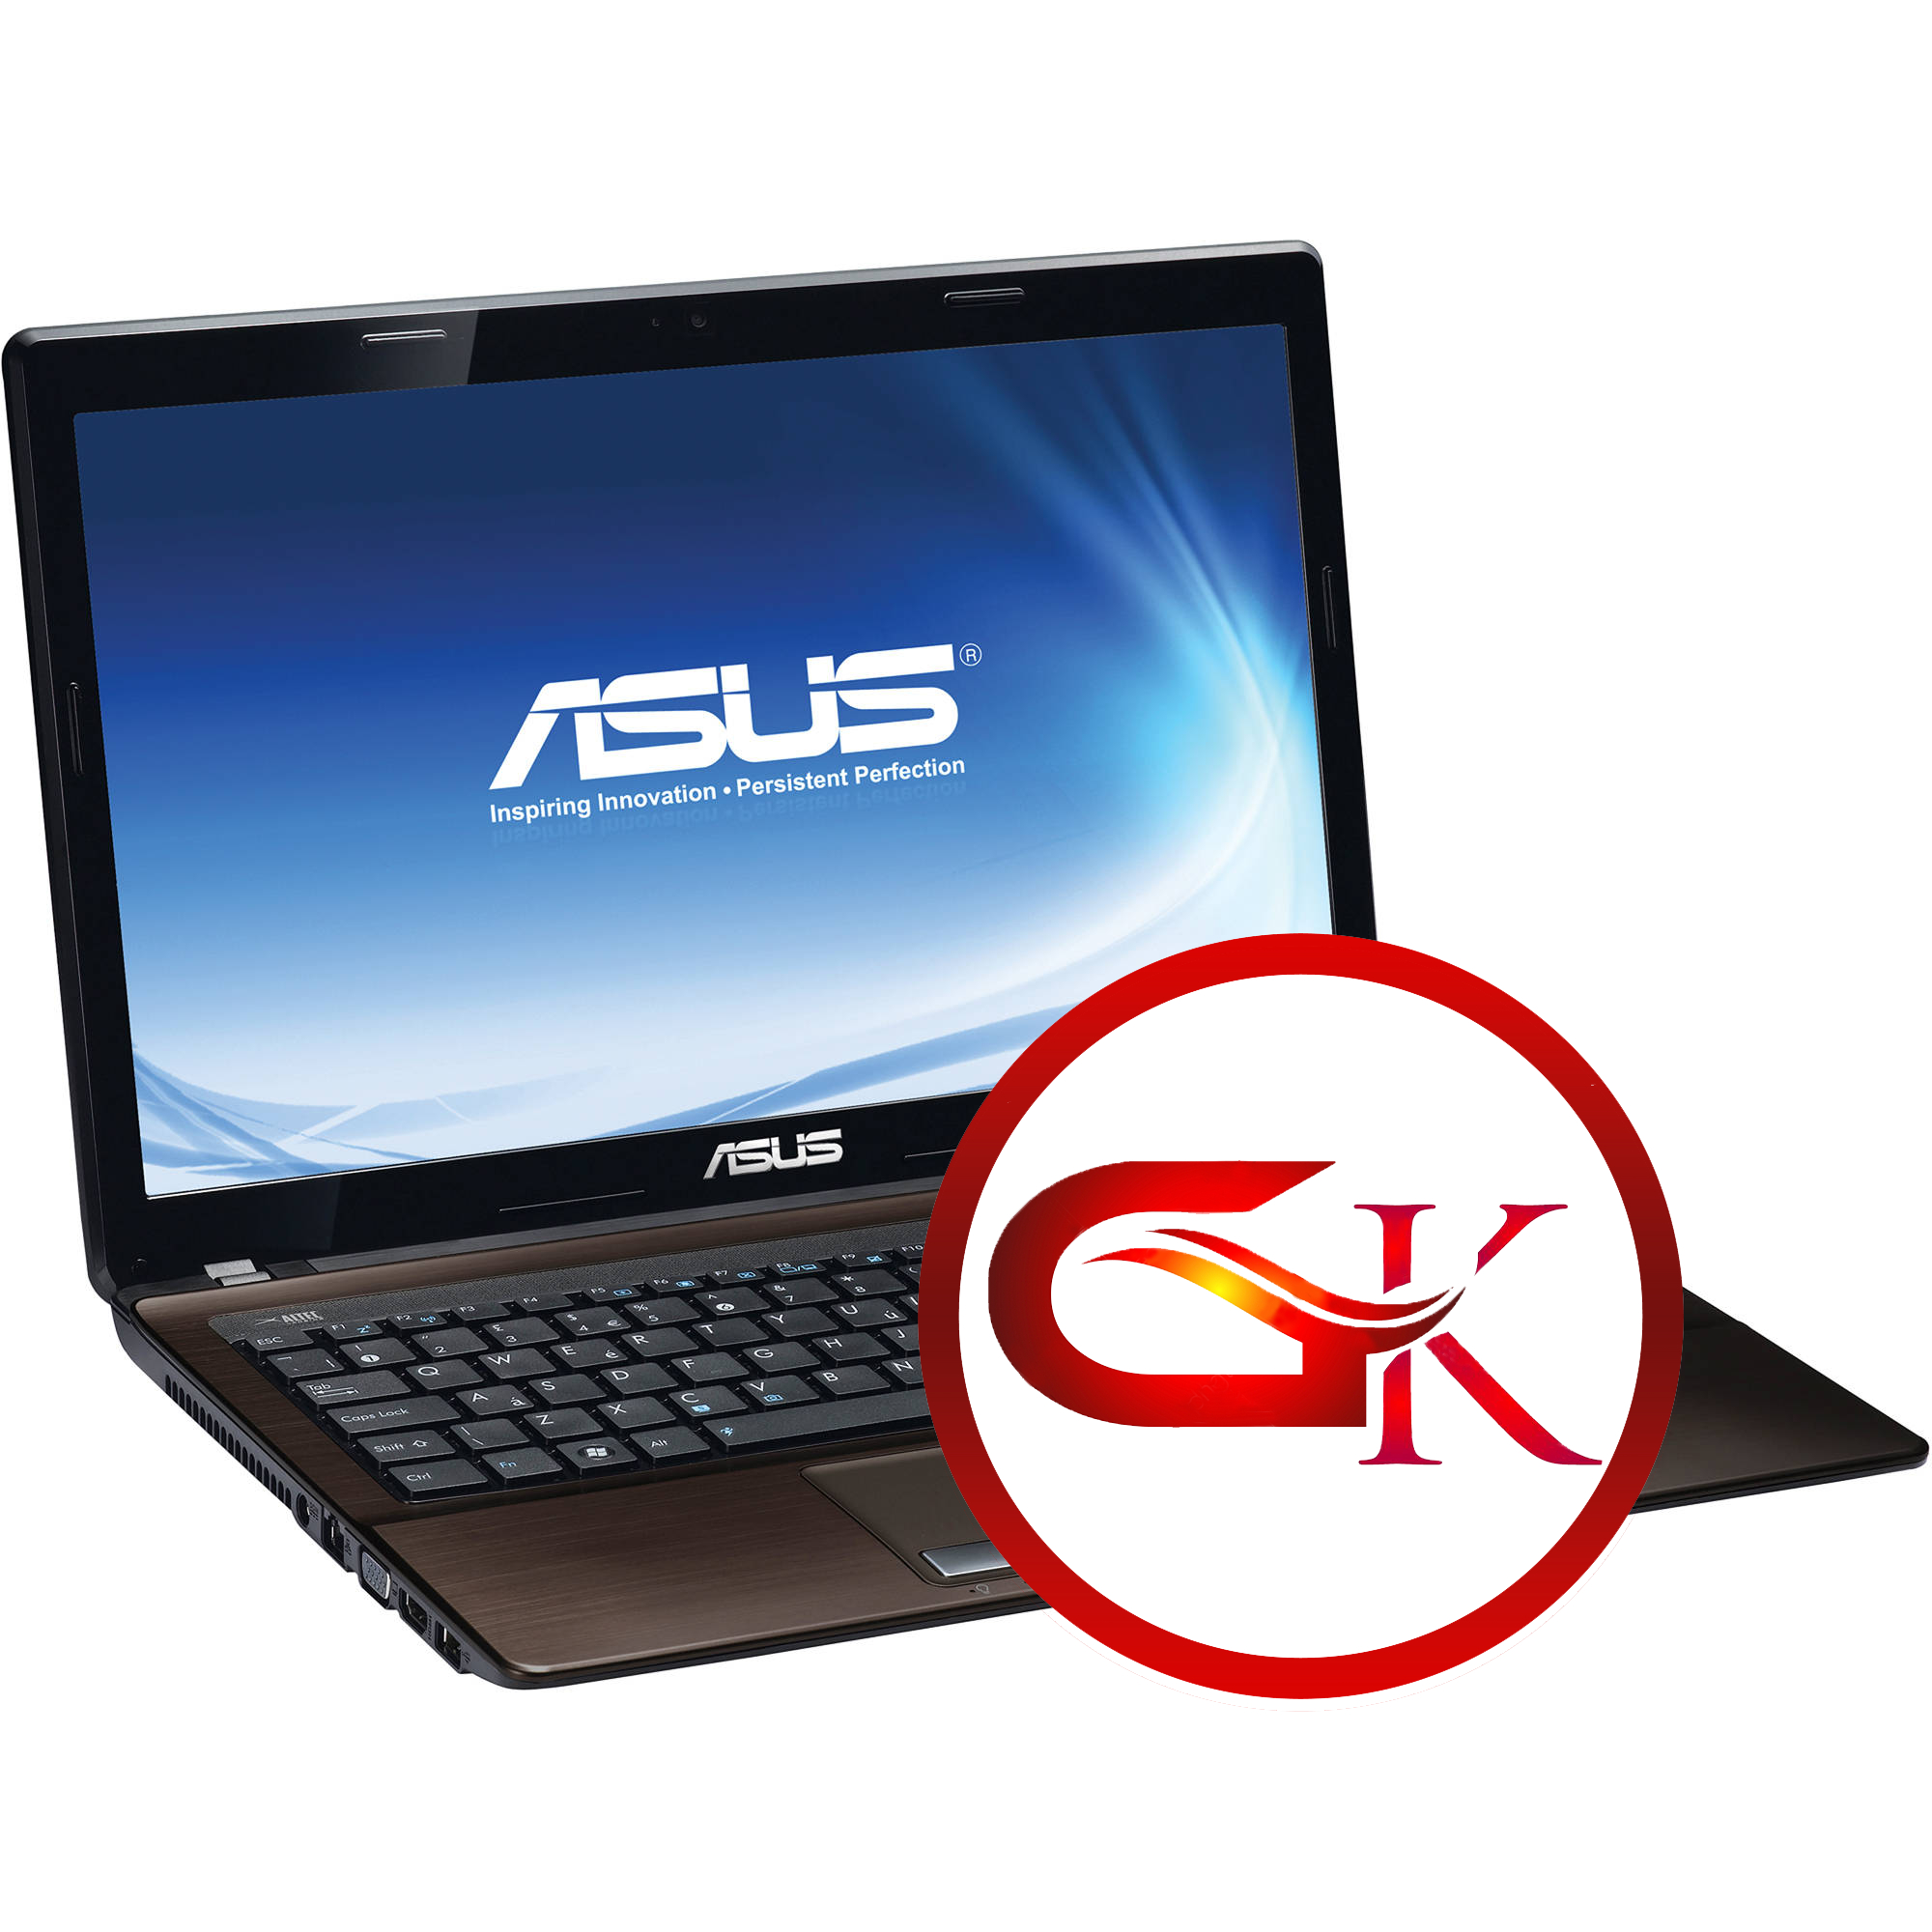 Asus K53E | CPU i5 | RAM 4GB | 500GB HDD | Intel HD Graphic